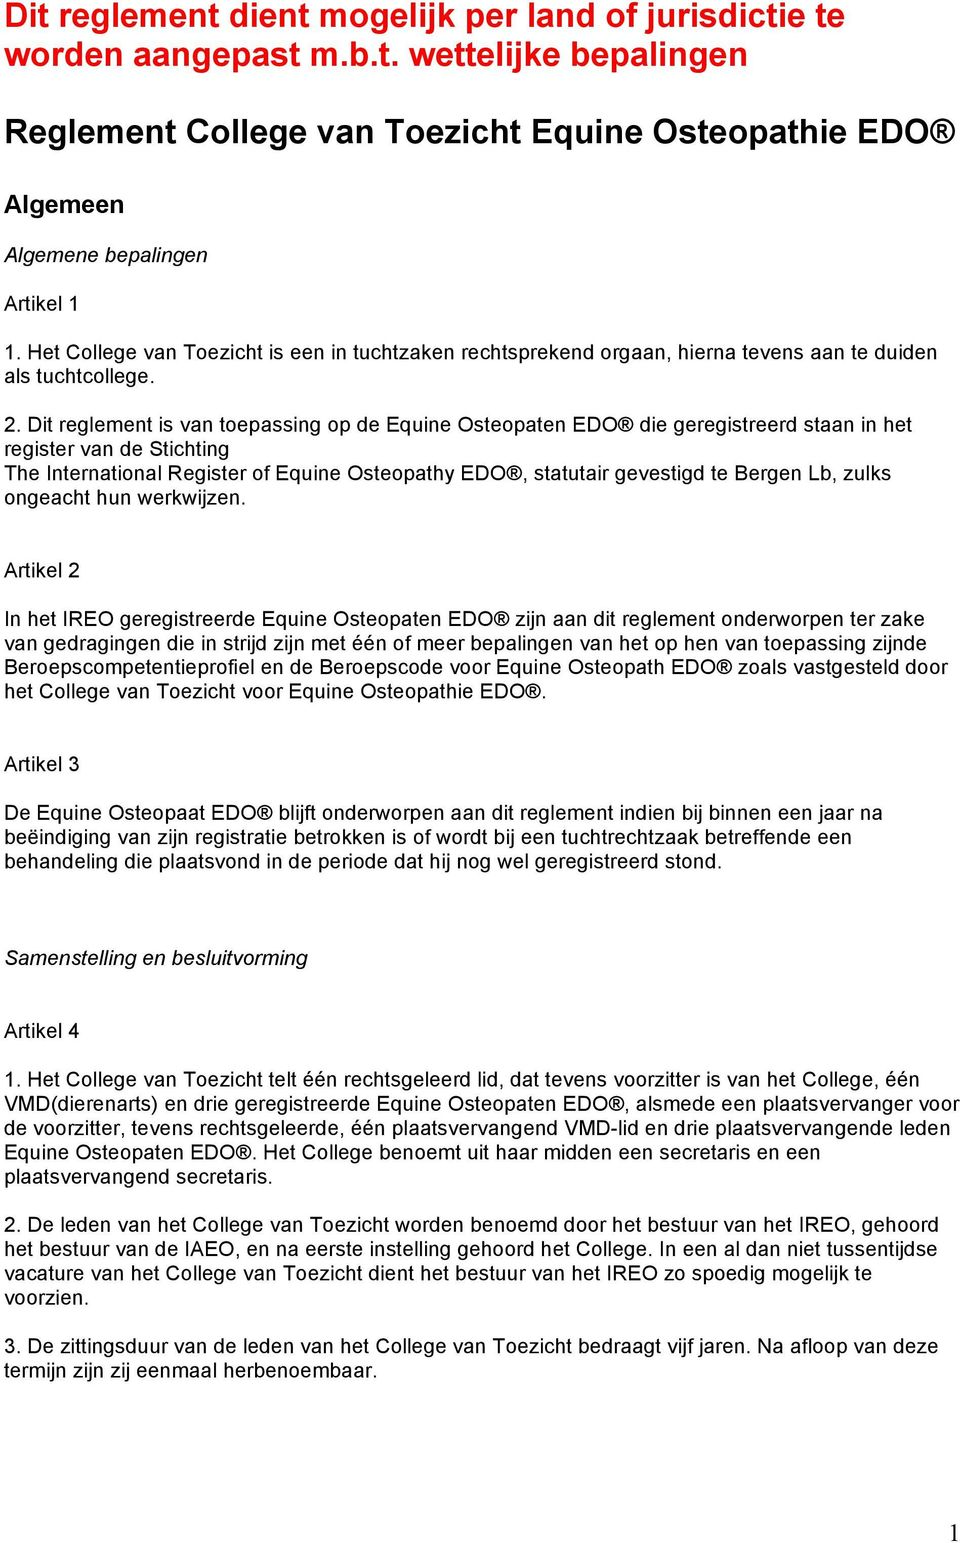 Dit reglement is van toepassing op de Equine Osteopaten EDO die geregistreerd staan in het register van de Stichting The International Register of Equine Osteopathy EDO, statutair gevestigd te Bergen